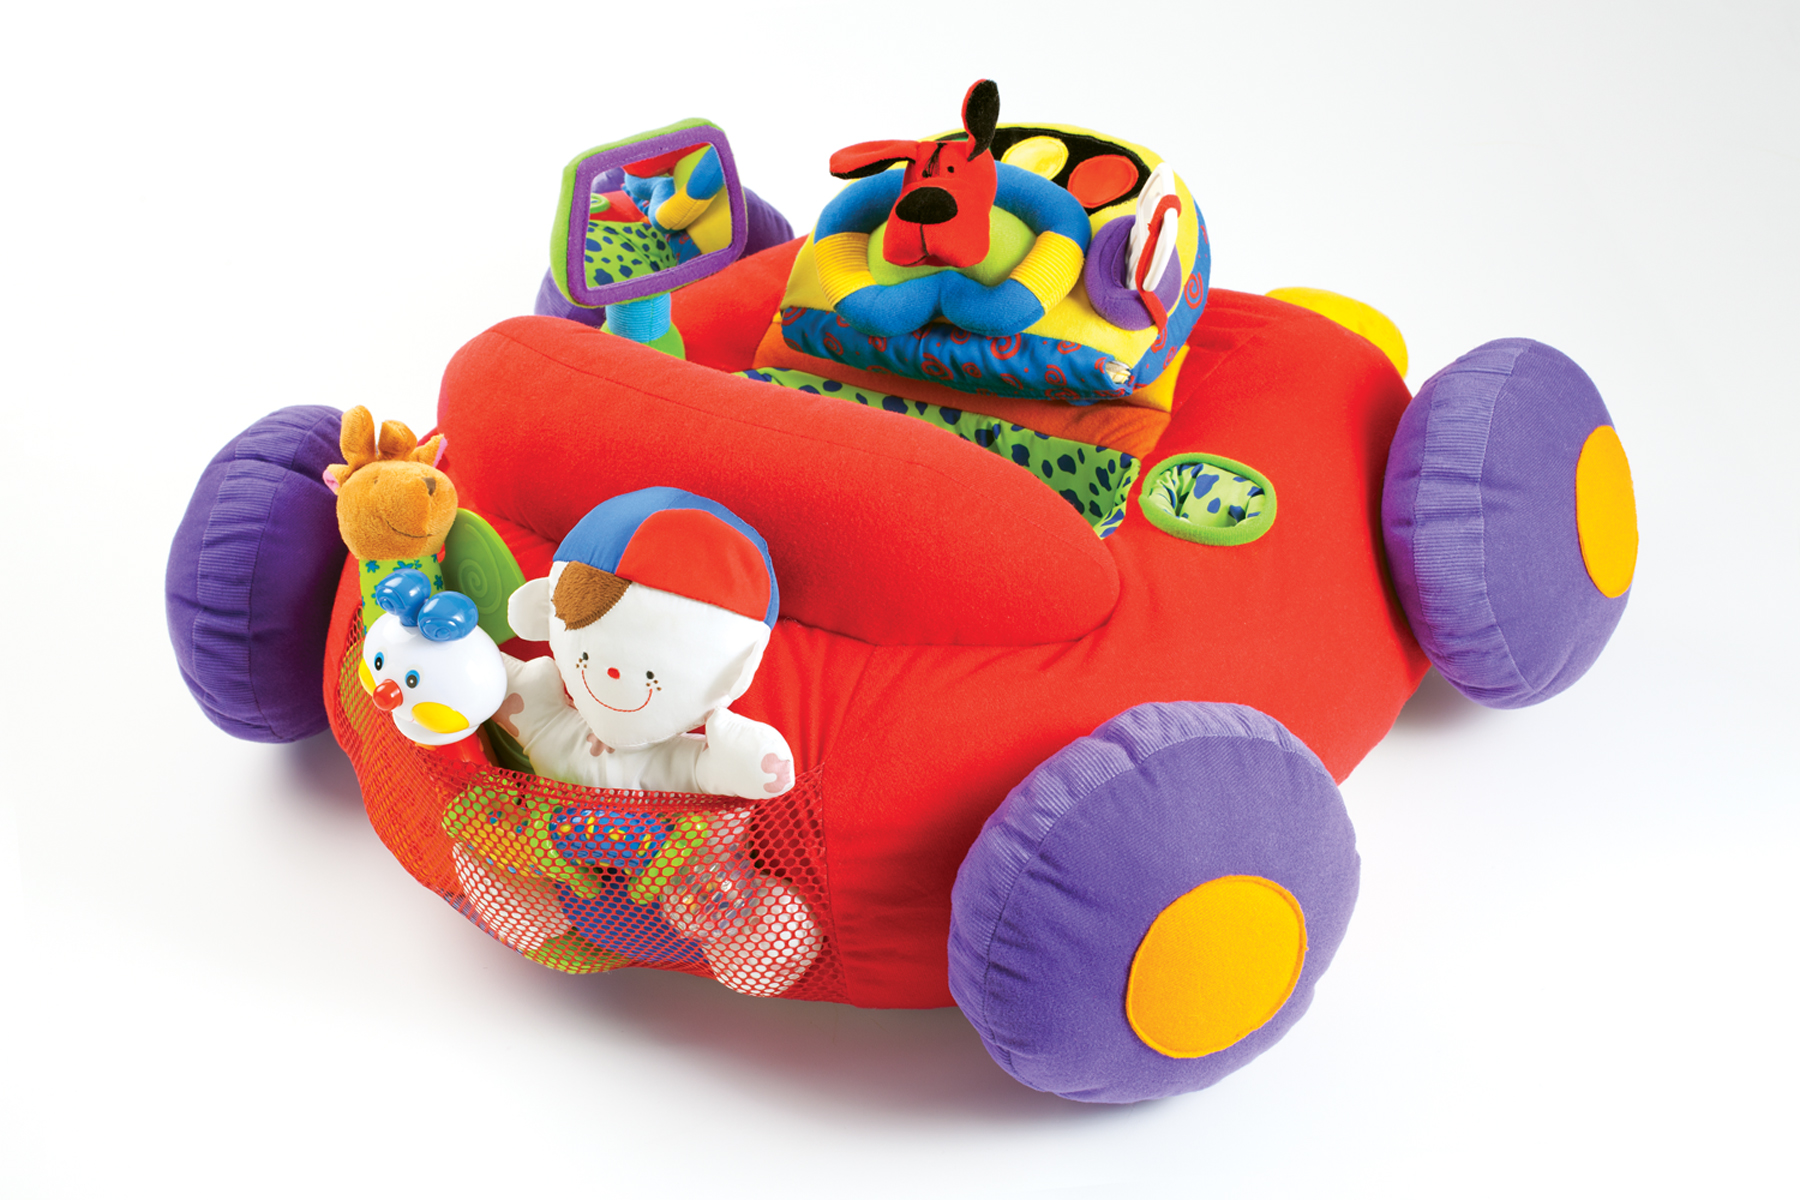 Beep Beep Amp Play Activity Toy